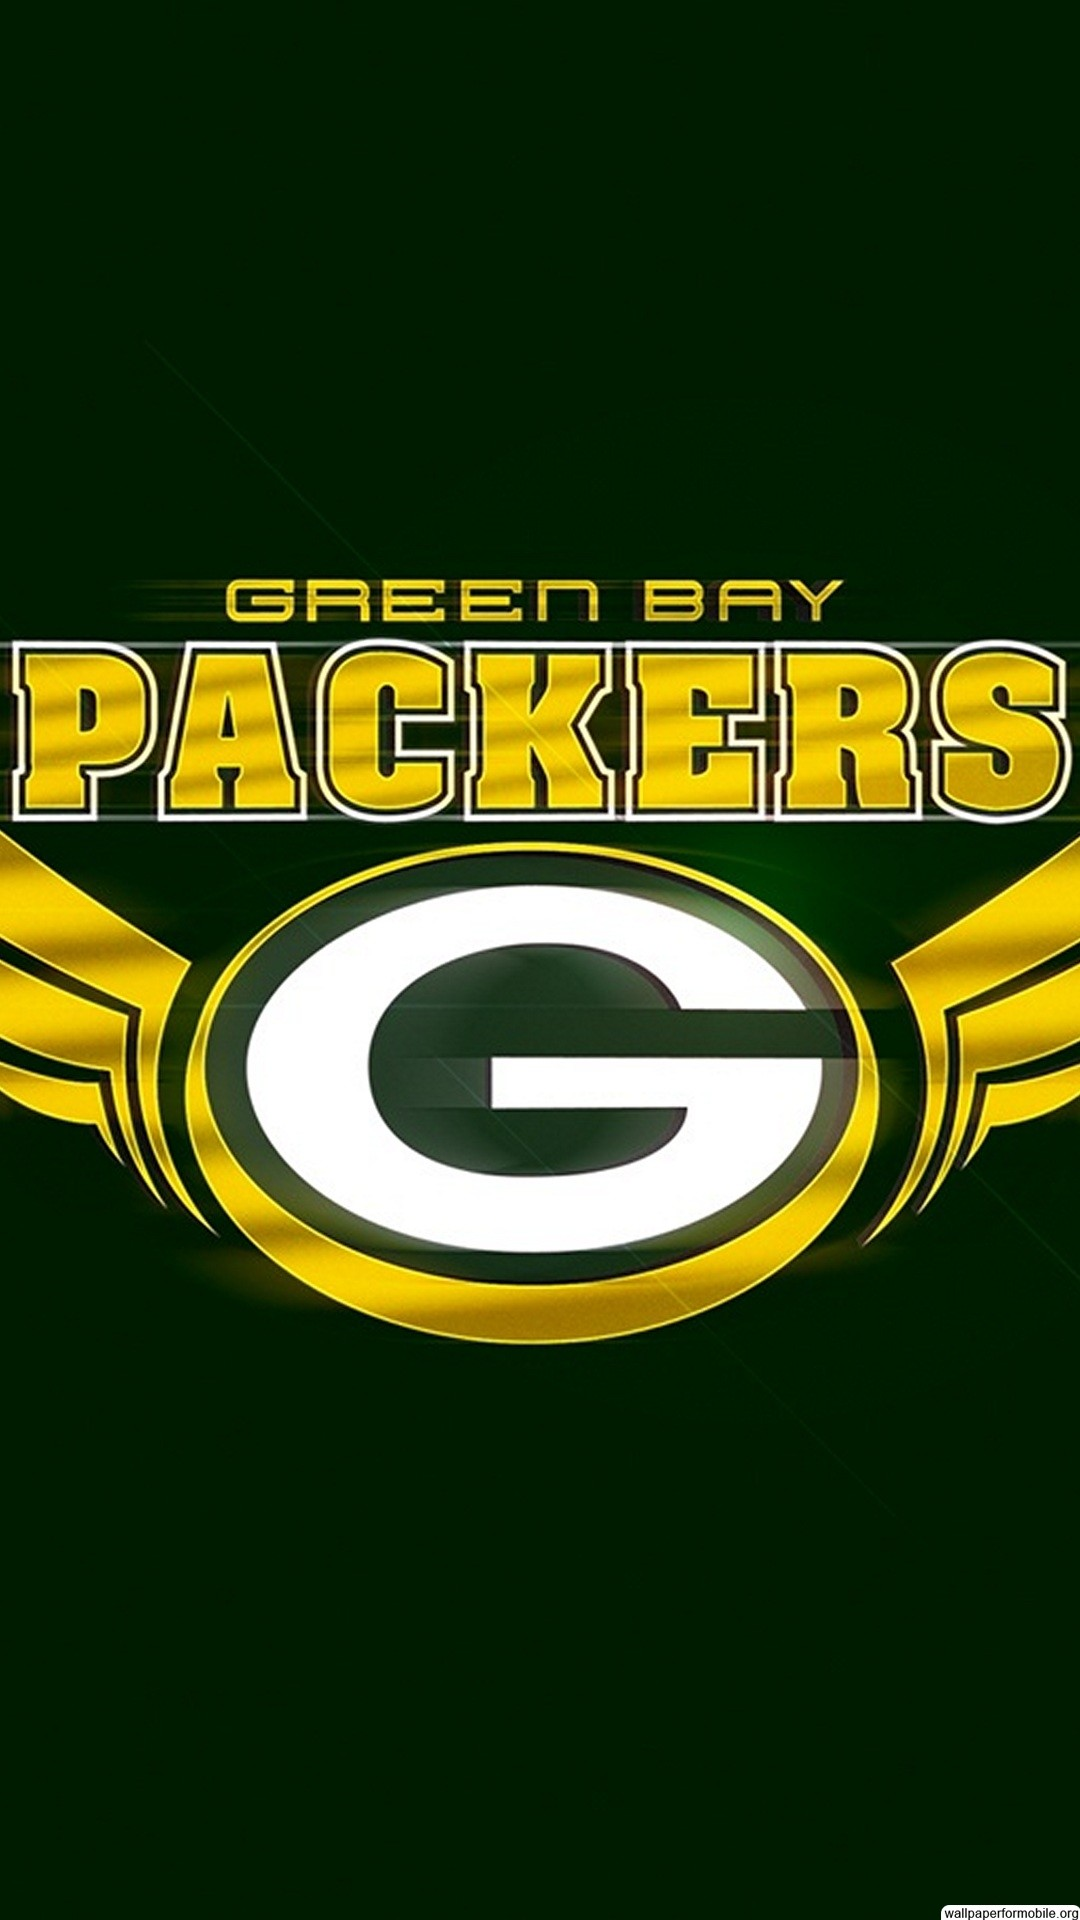 Aaron Rodgers Iphone Wallpaper Green Bay Packers Wallpaper 65 Images